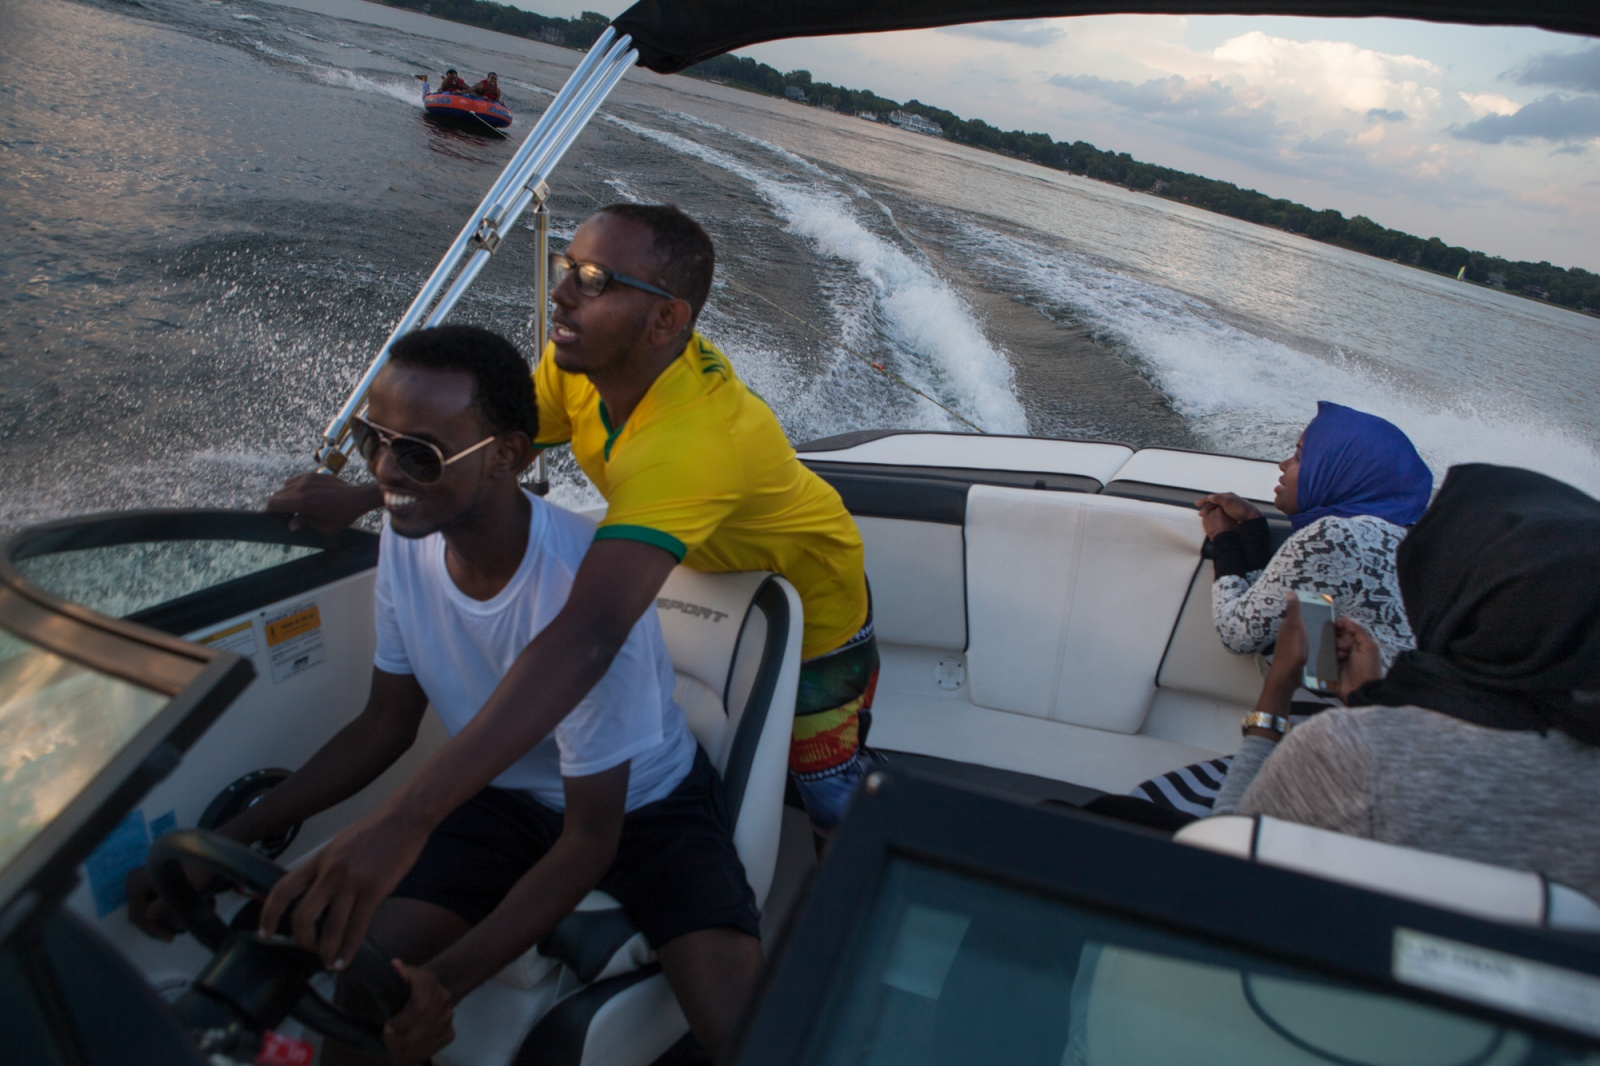 On a summer afternoon with his friends, Abdikadir Hassan (far left) and Somali friends who are visiting from Columbus, Ohio and Kitchener, Canada go water tubing on White Bear Lake, one of the many lakes around Minneapolis.